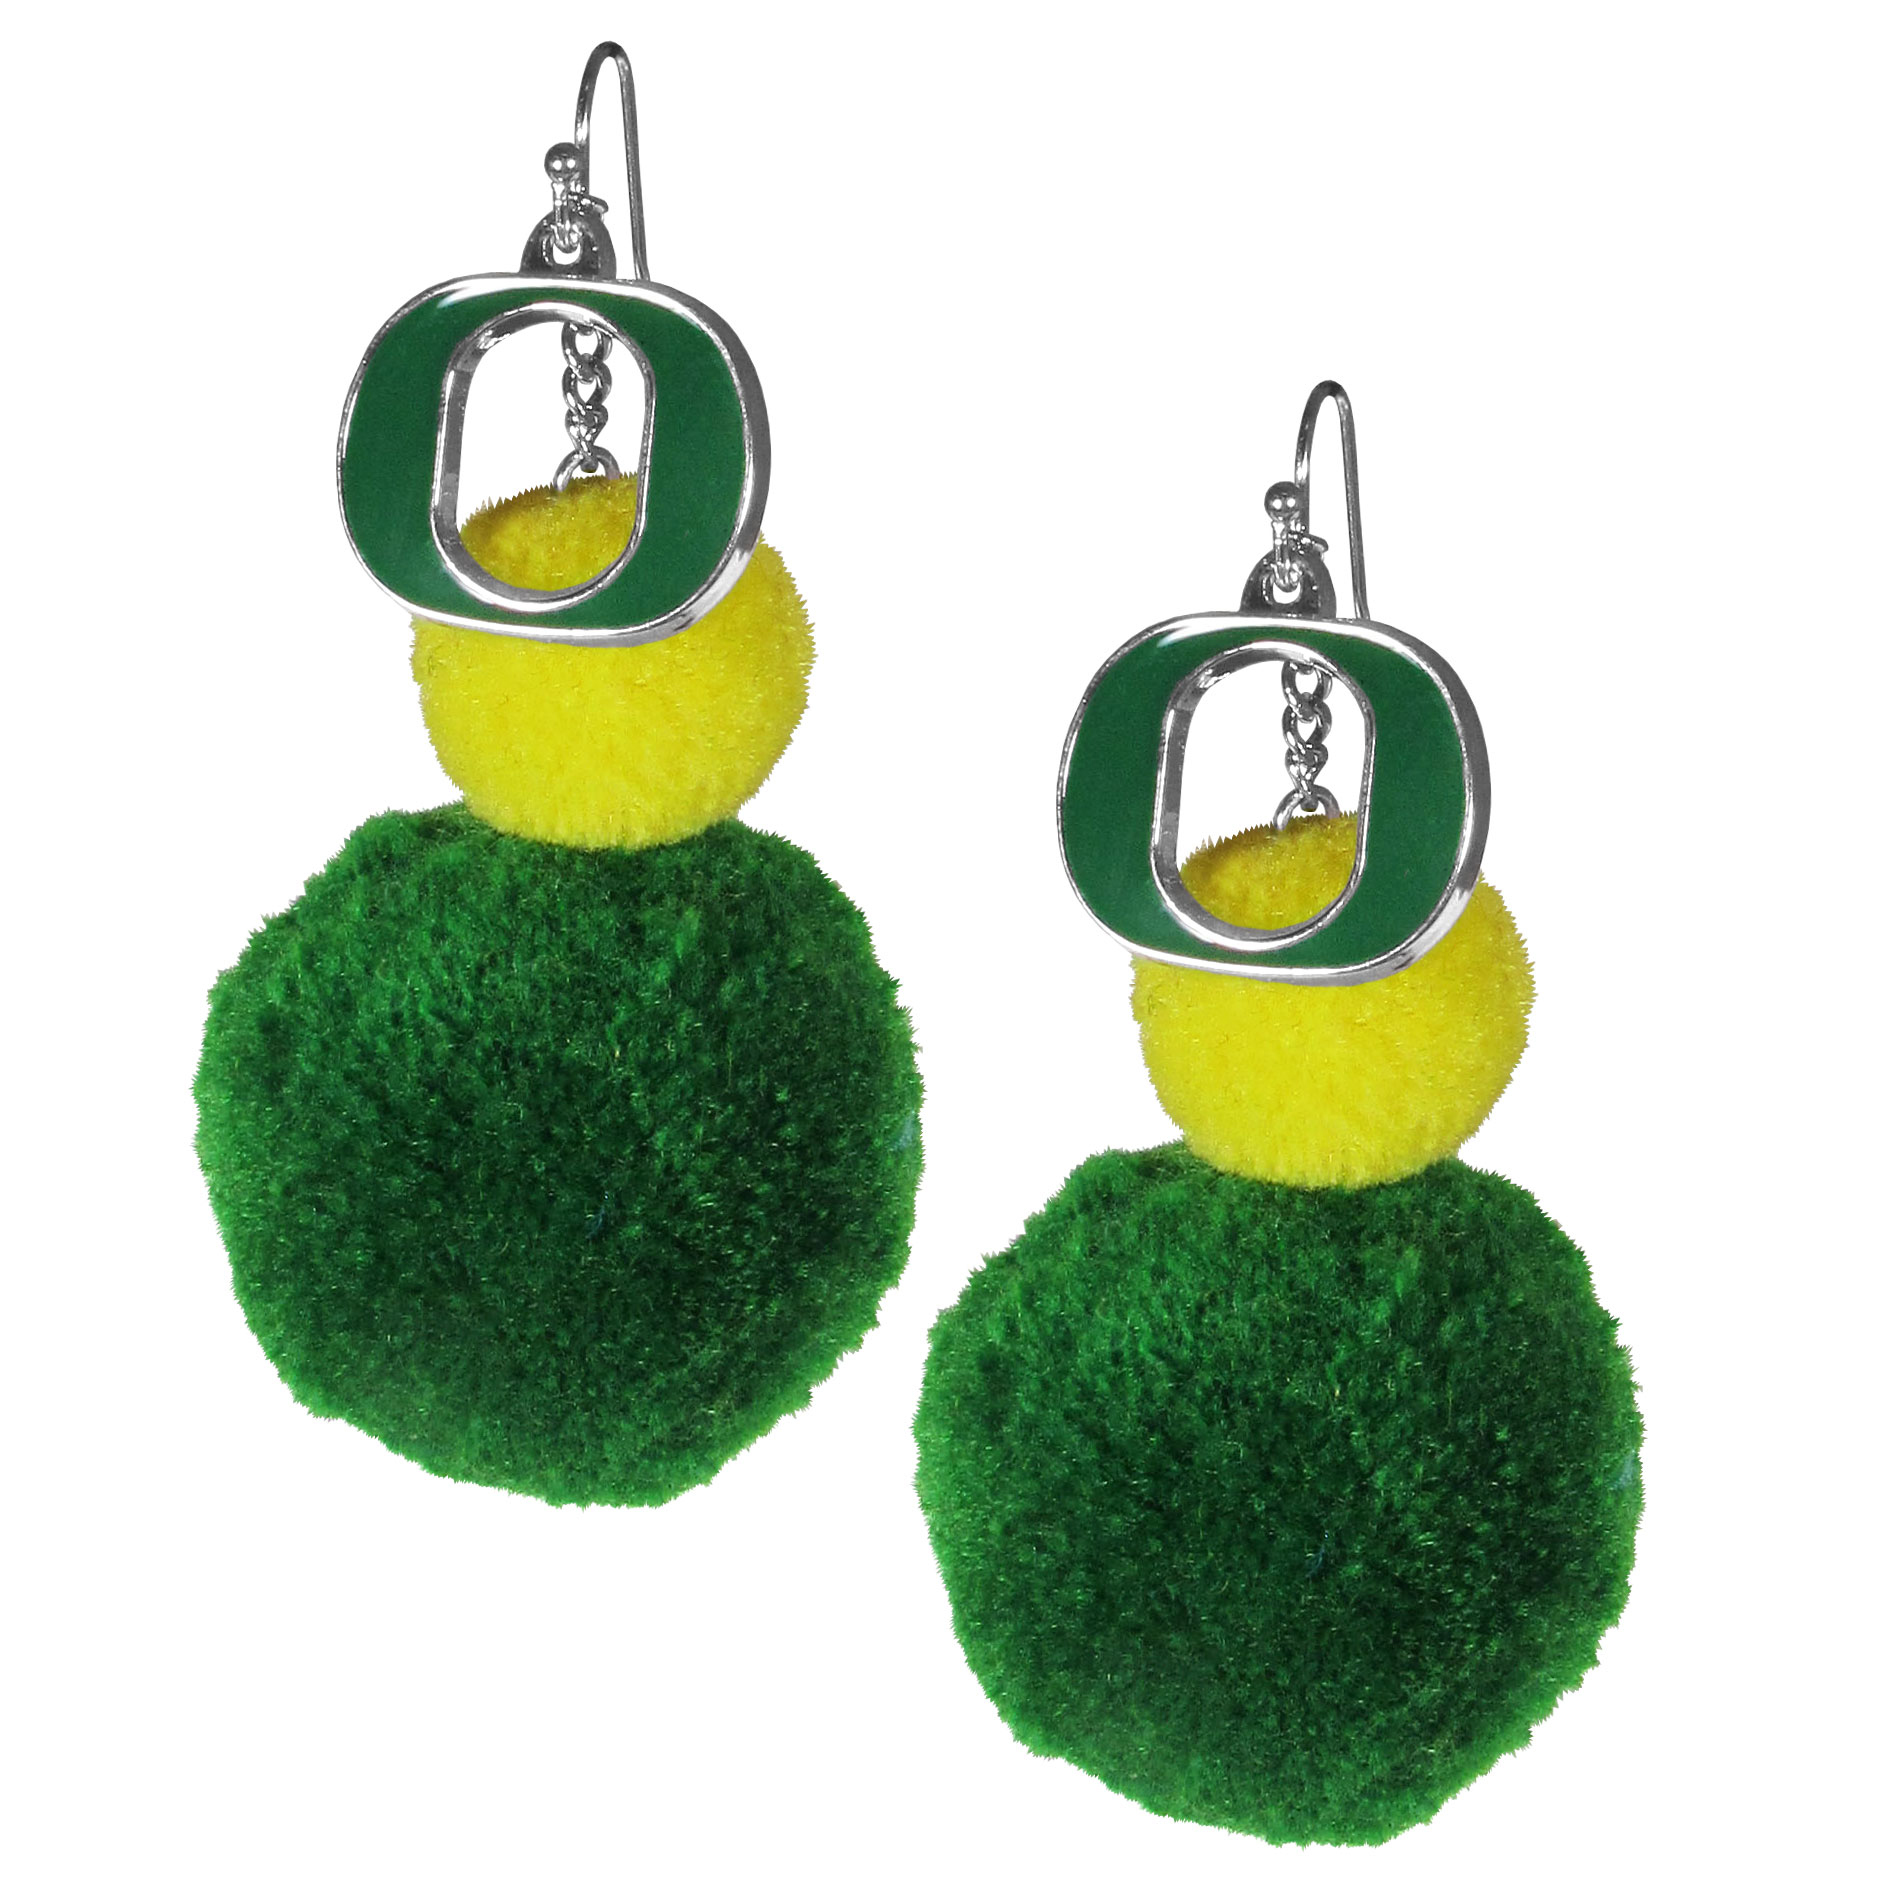 Oregon Ducks Pom Pom Earrings - These fun and bold earrings are a game day must! The earrings feature a metal Oregon Ducks charm with enameled color details that hangs above to colorful pom pom charms. The largest pom is 1.5 inches round for, the earrings hang at 3.5 inches long. The fishhook posts are nickel free and hypoallergenic.